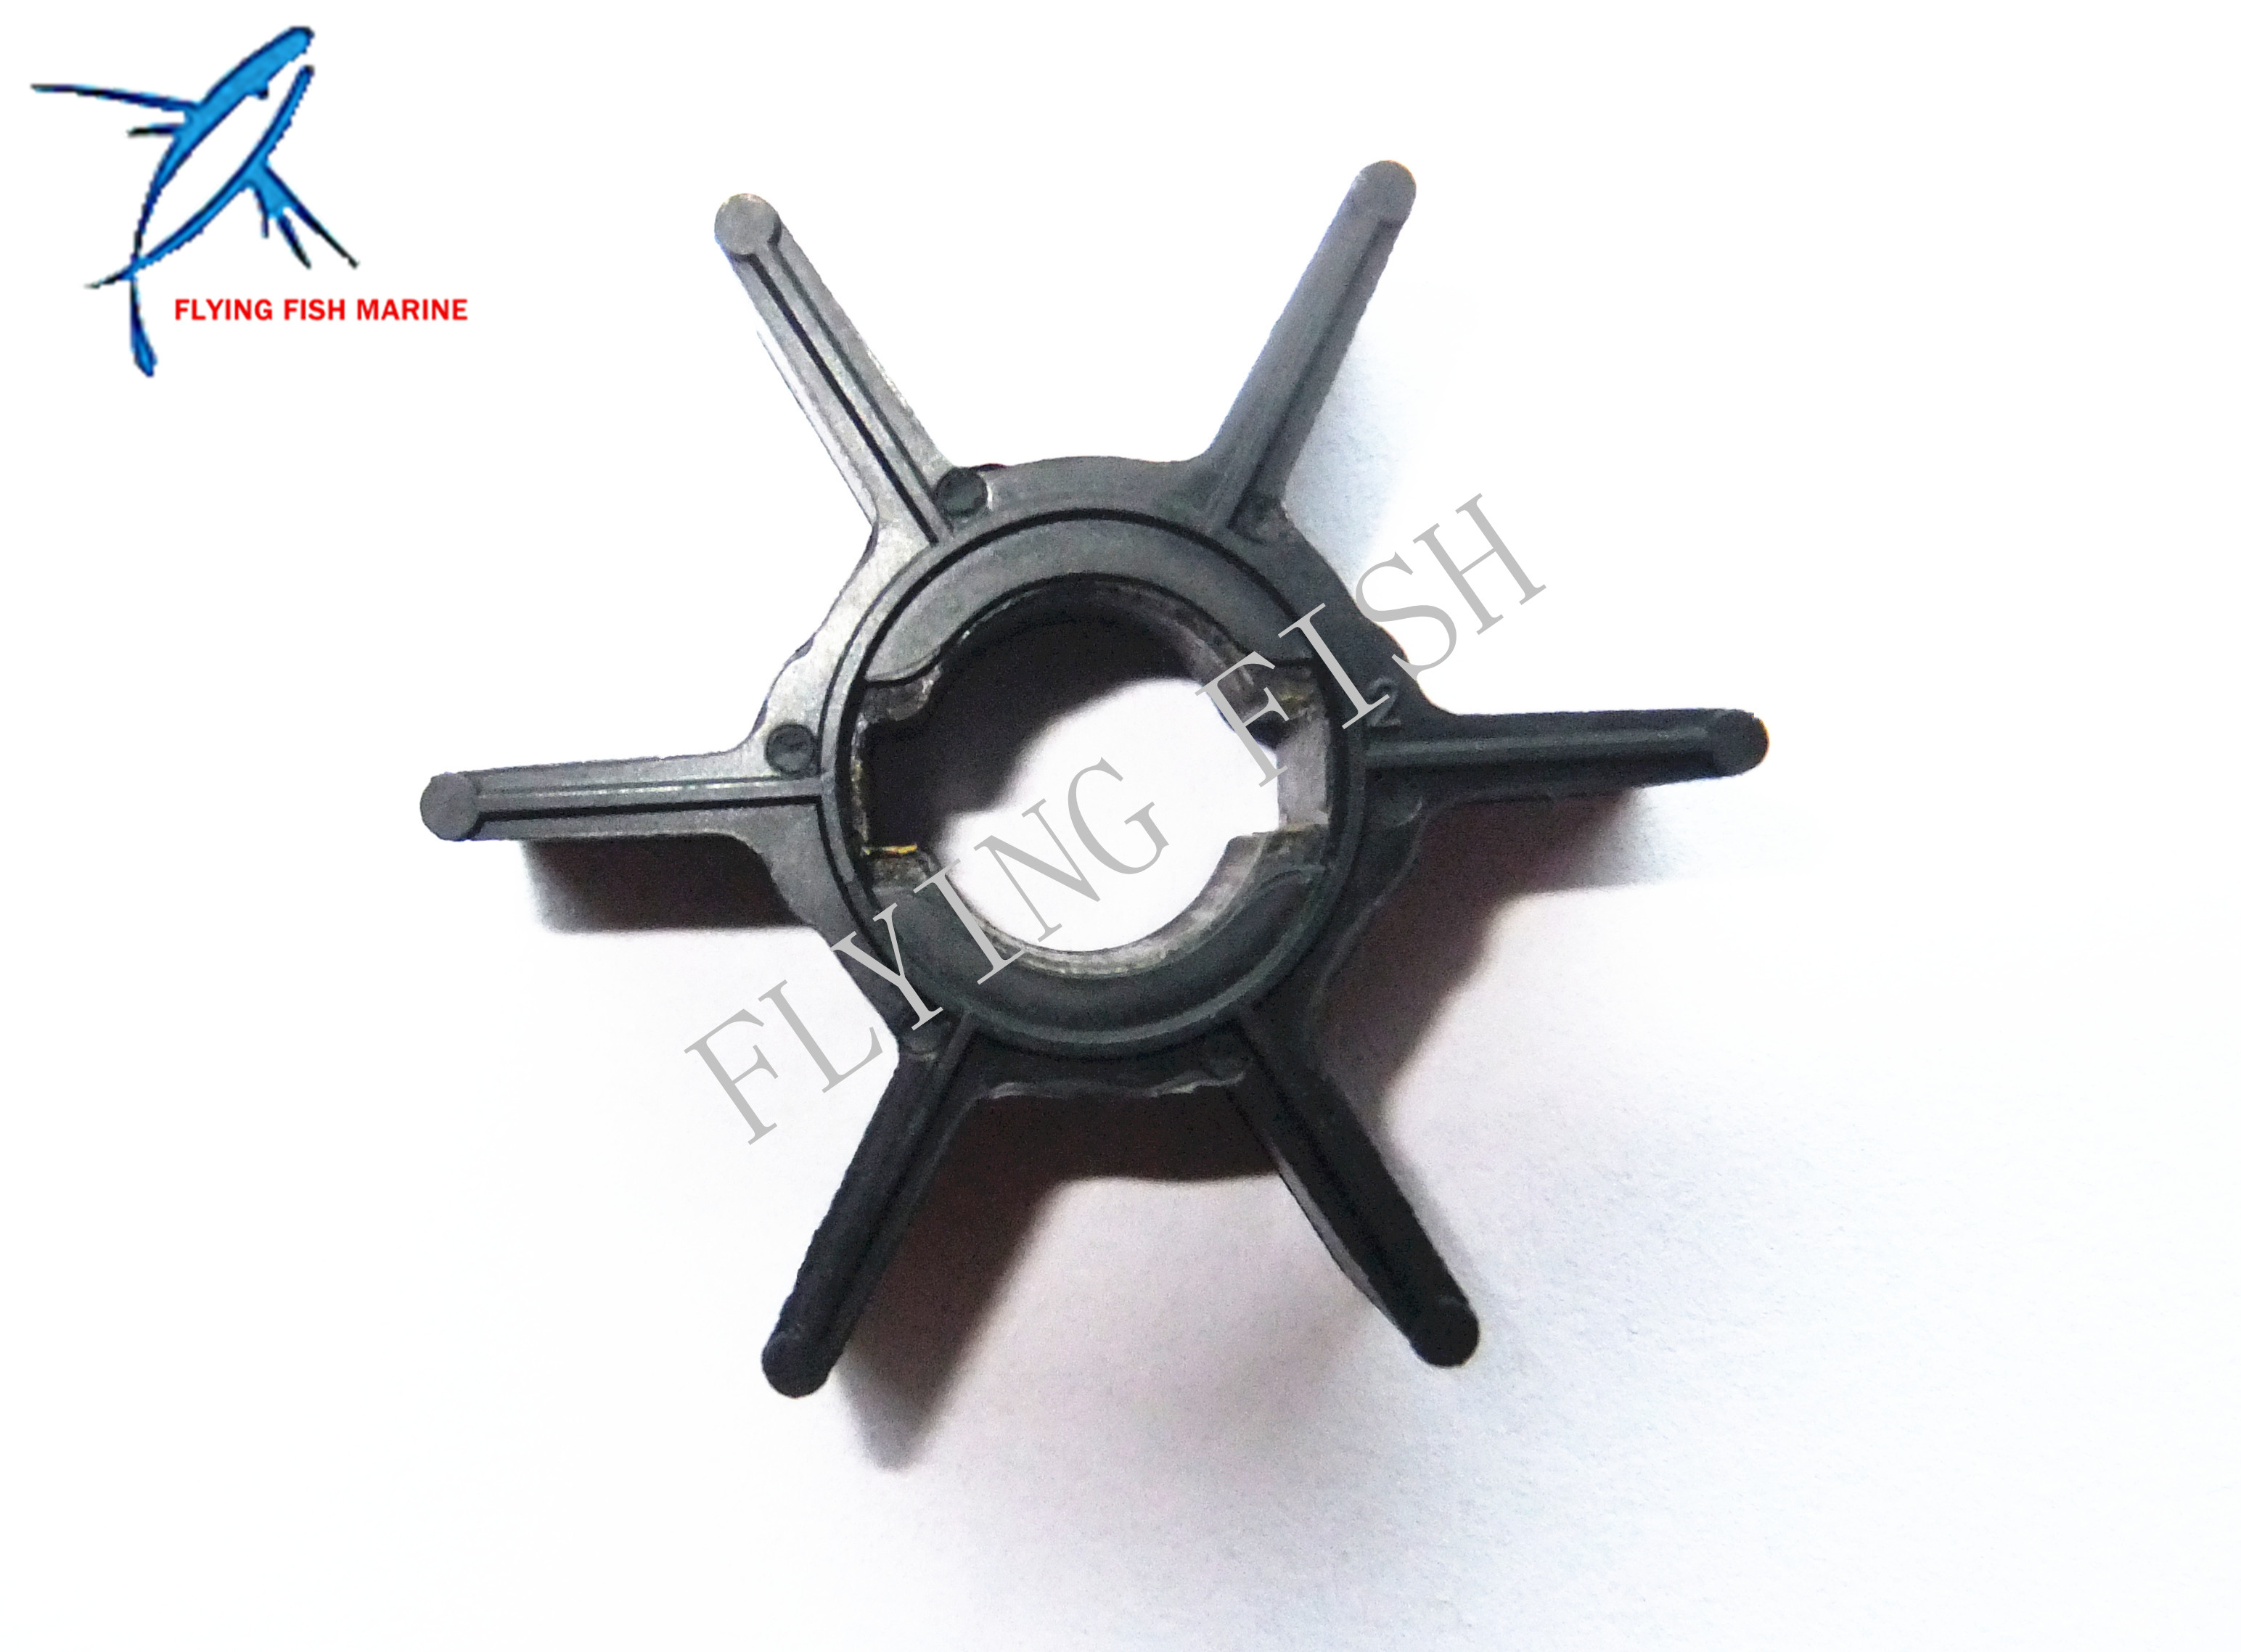 Water Pump Impeller for Tohatsu Nissan 309650211M 309-65021-1 <font><b>2.5HP</b></font> 3.5HP <font><b>Outboard</b></font> Engine Boat <font><b>Motor</b></font> Free Shipping image